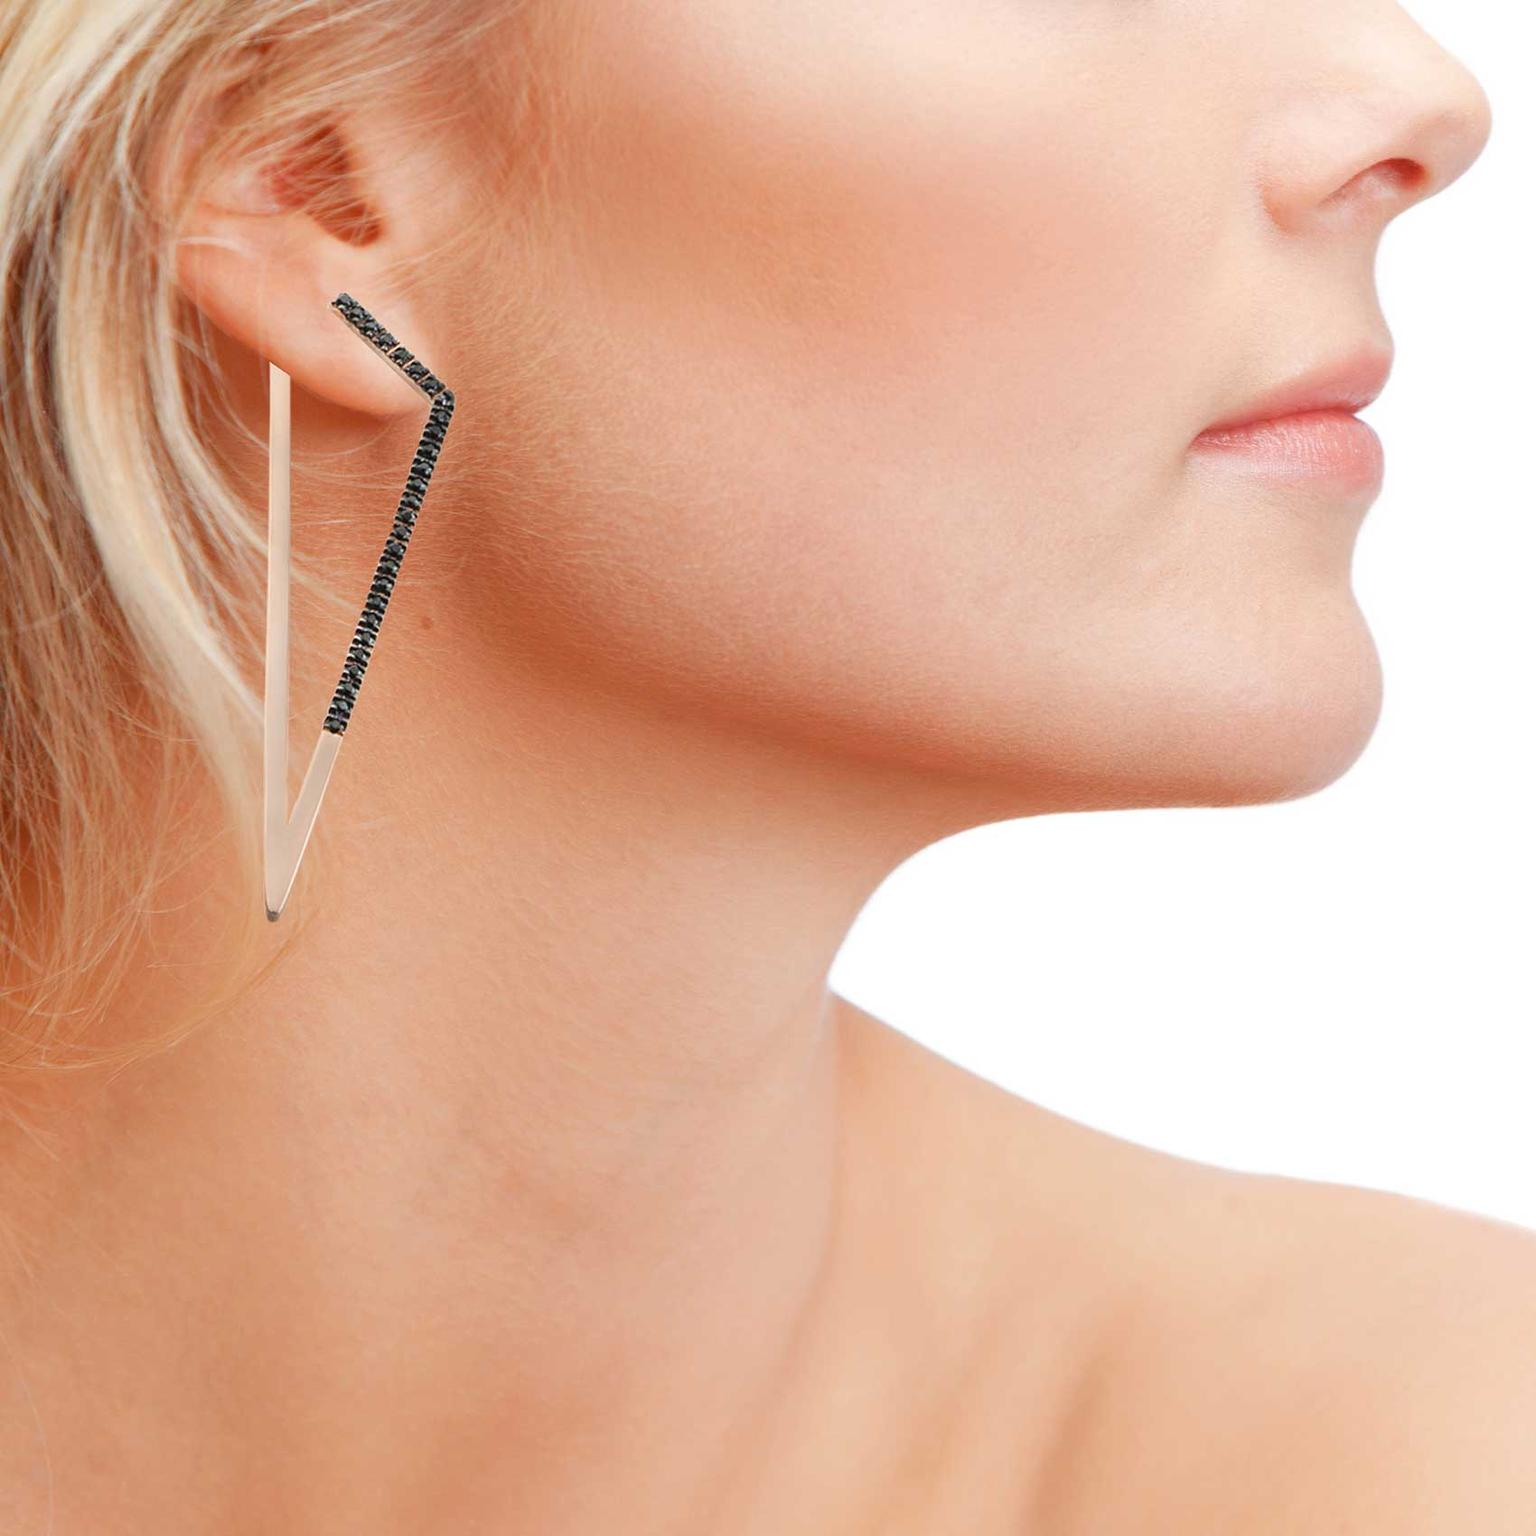 MyriamSOS geometric earrings